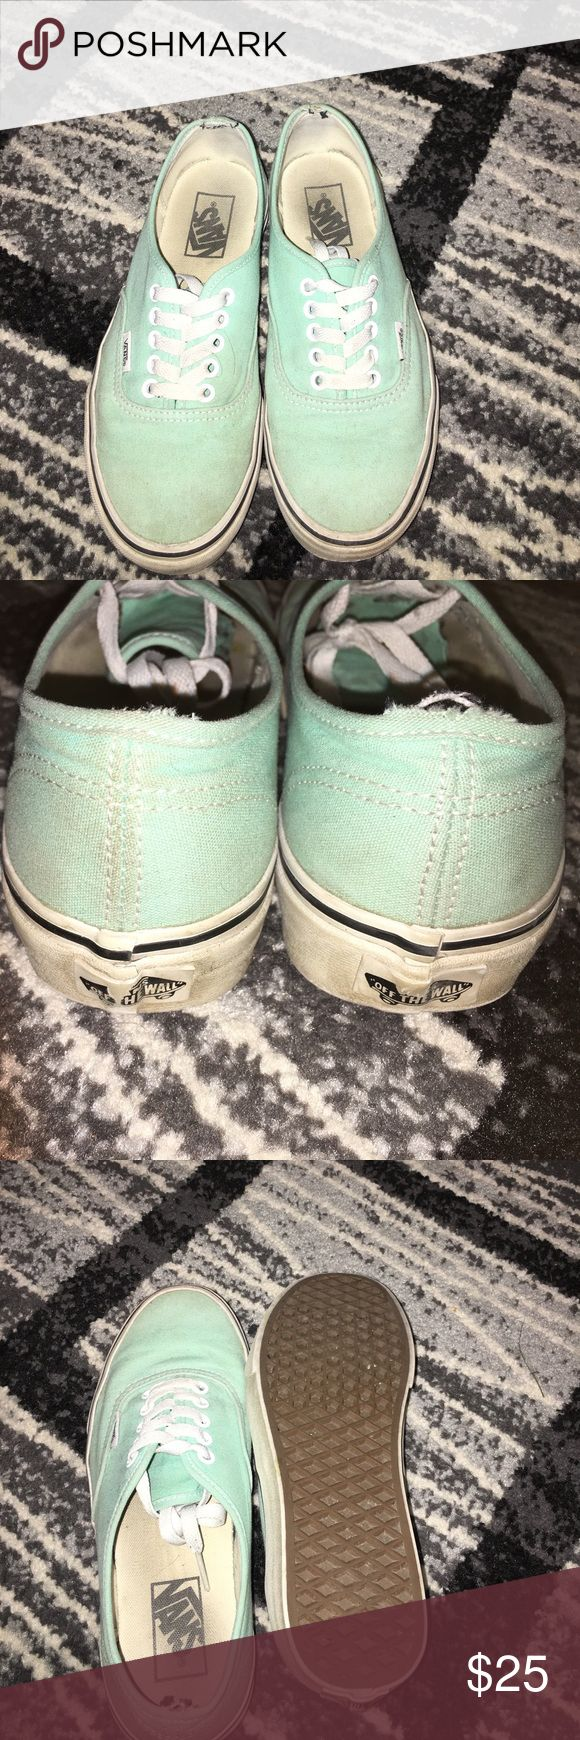 Mint green Vans Worn a few times but still in pretty good condition. there are a few spots that are dirty but could be cleaned fairly easily. No smell. Vans Shoes Sneakers